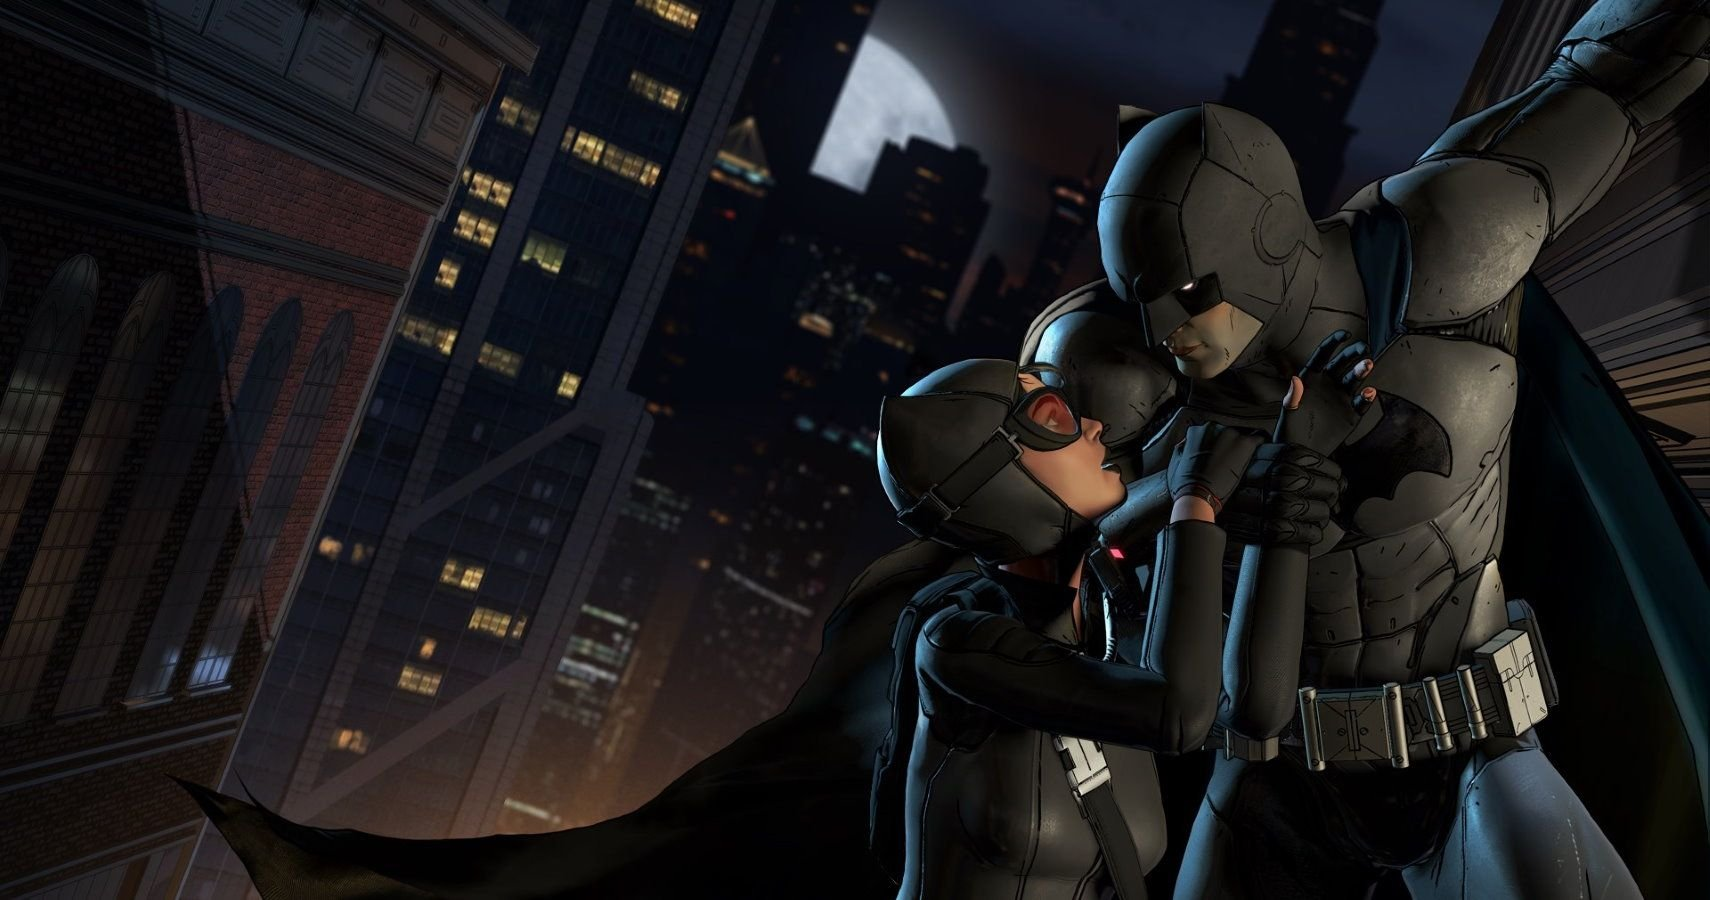 Telltale's Batman Series Is Free With Amazon Prime Gaming In June